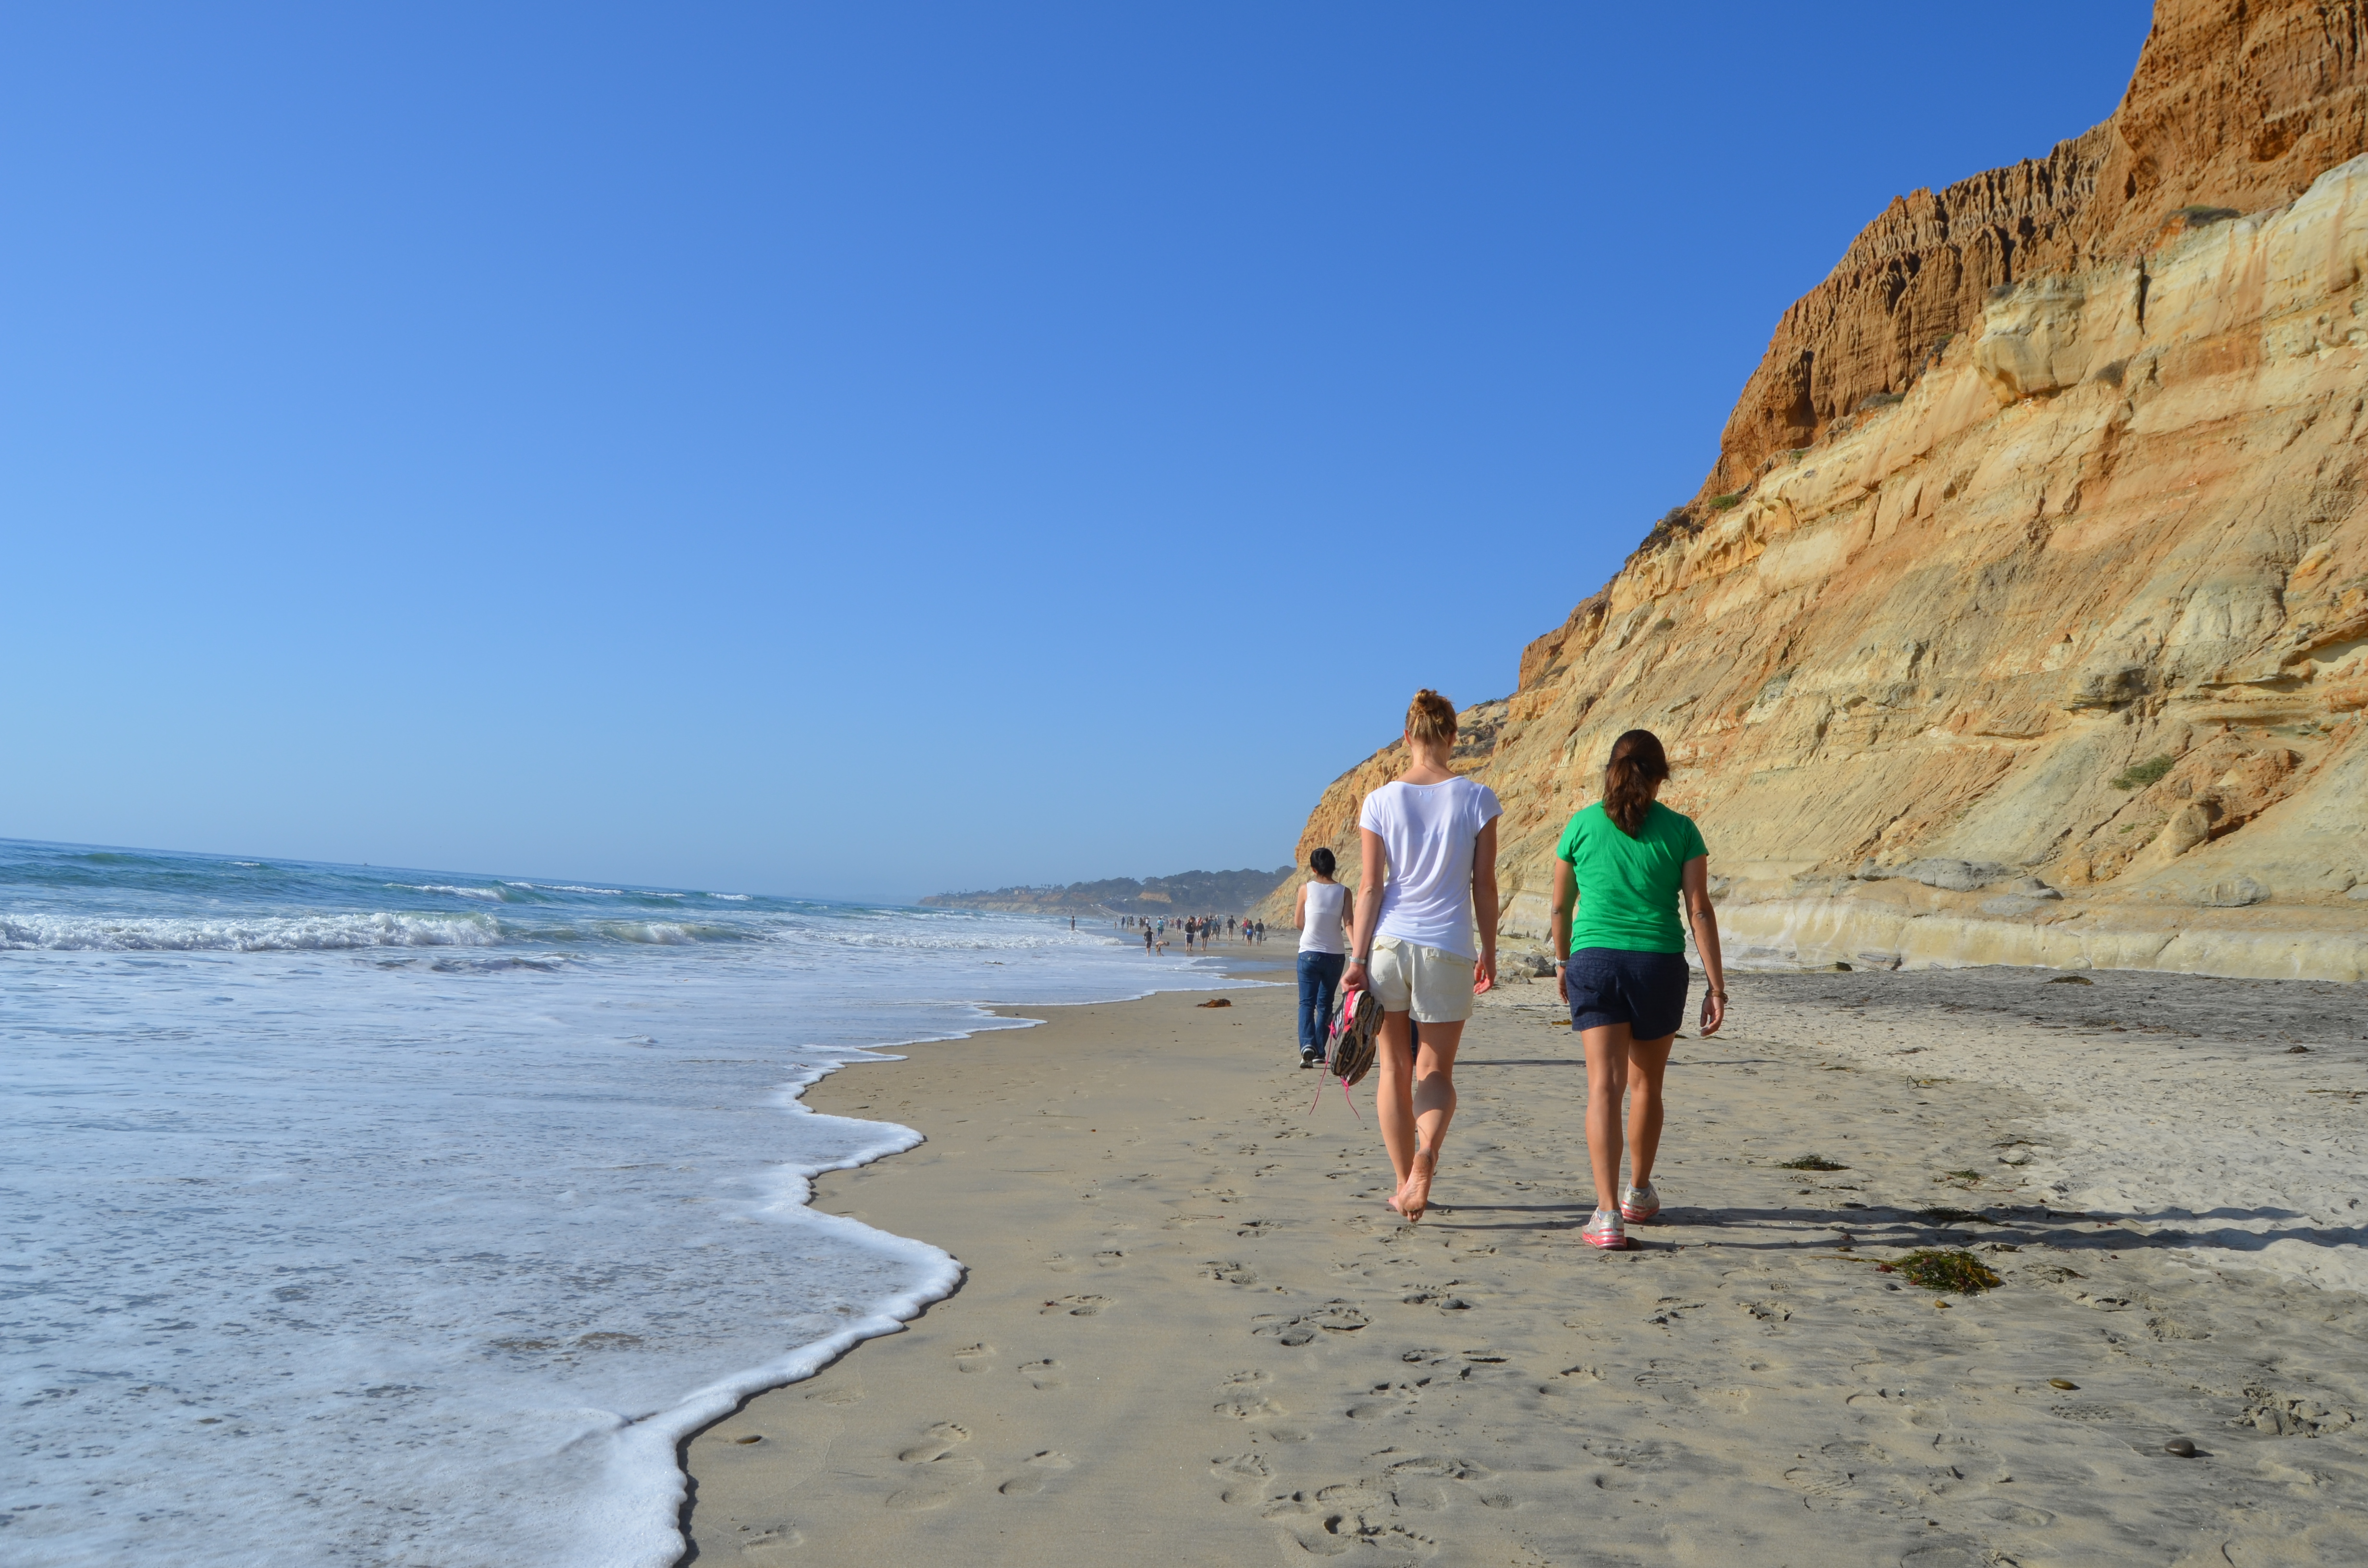 Emily in Torrey Pines State Reserve